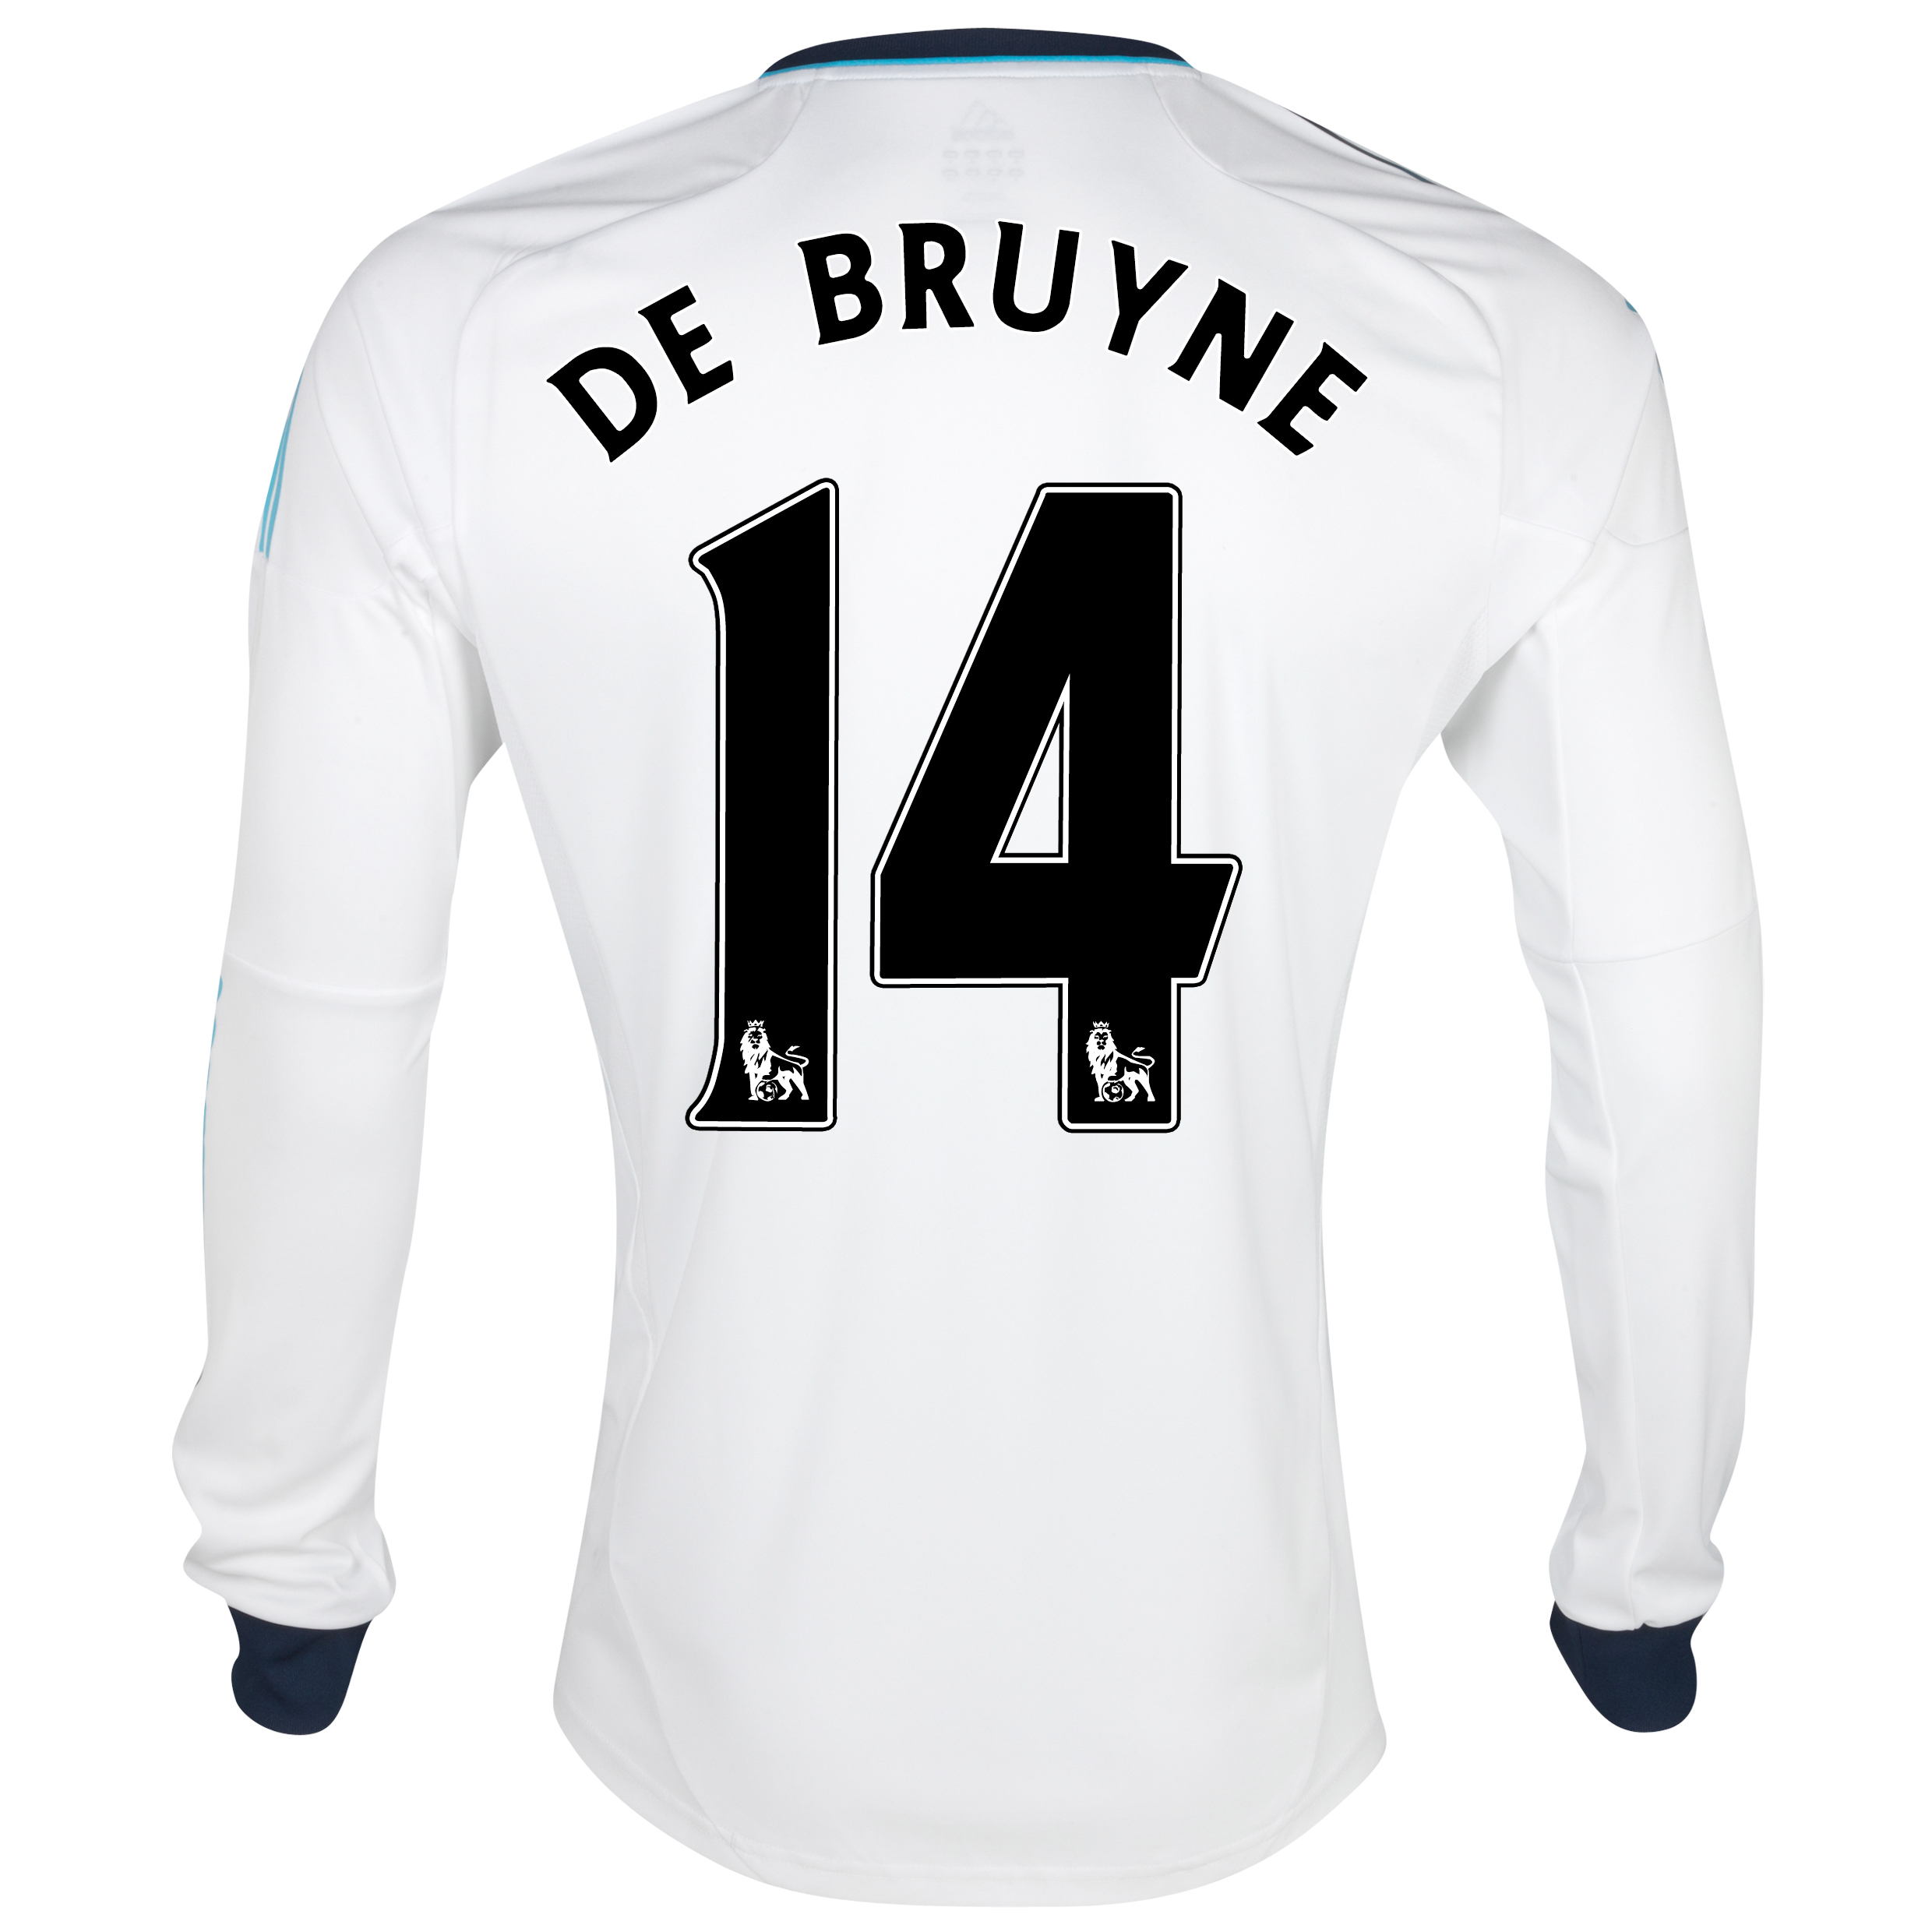 Chelsea Away Shirt 2012/13 - Long Sleeved - Kids with De Bruyne 14 printing